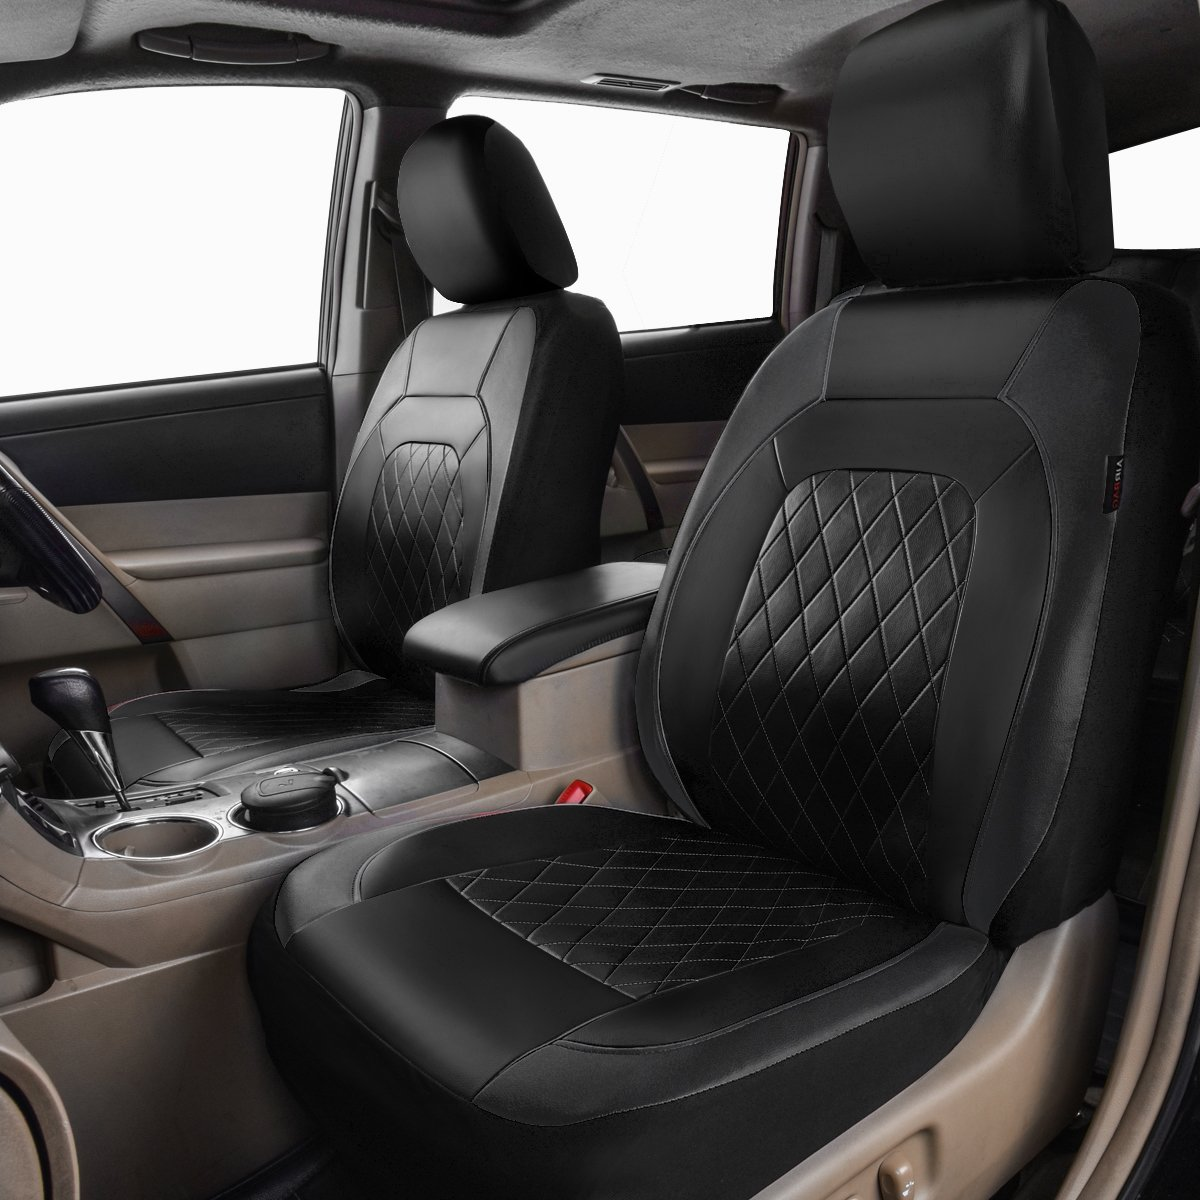 HORSE KINGDOM Universal Car Seat Covers Faux Leather Full Seat 11 pcs Airbag Compatible Breathable Black Gray